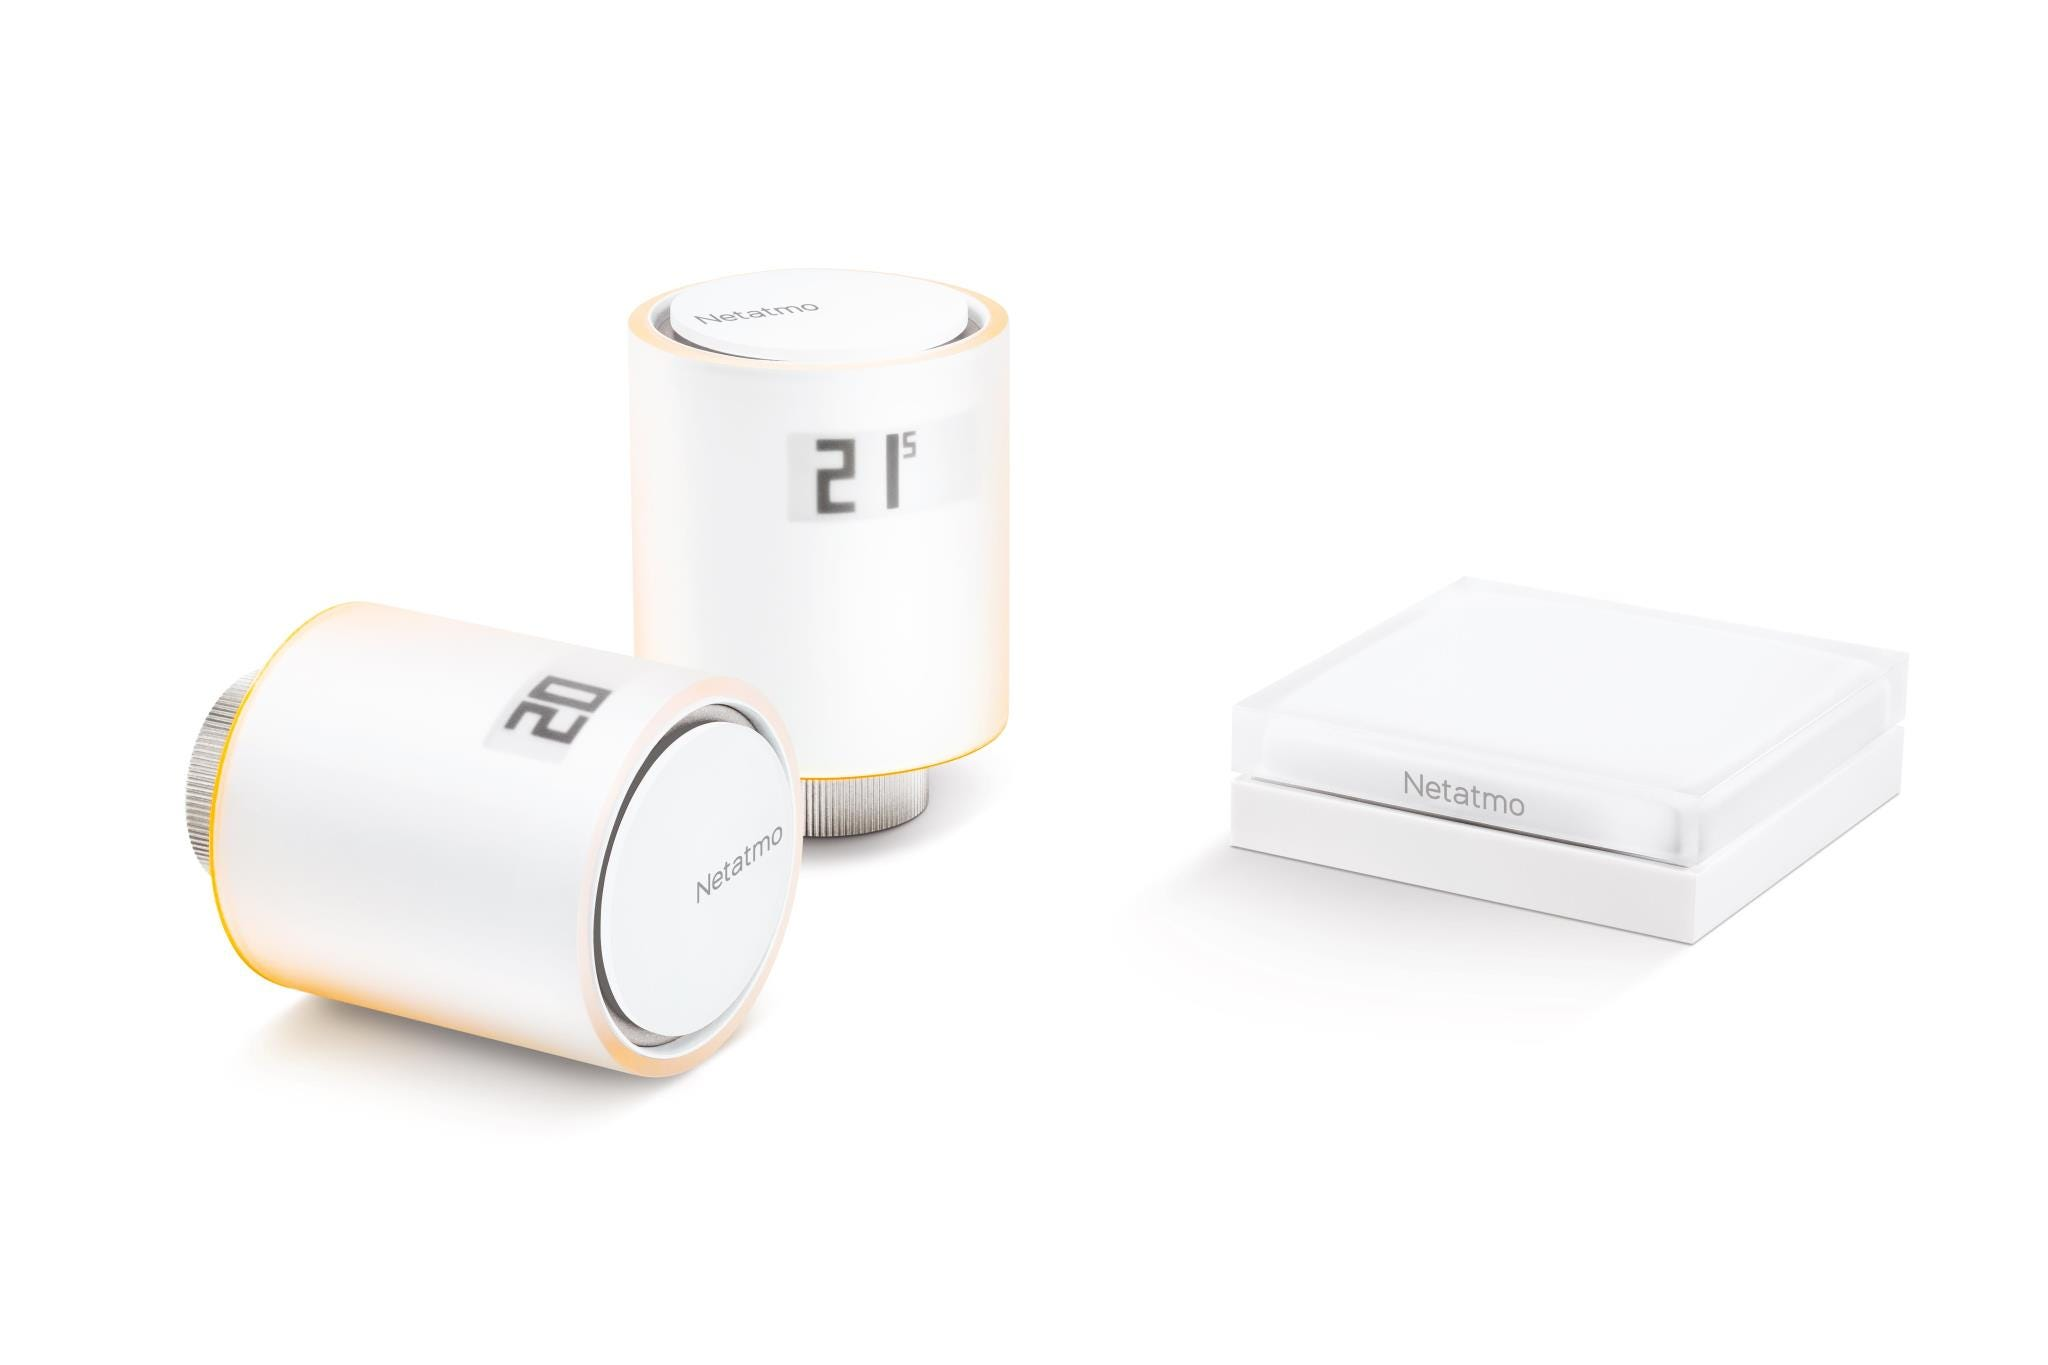 Netatmo Smart Thermostat Including 3 Additional Radiator Valves